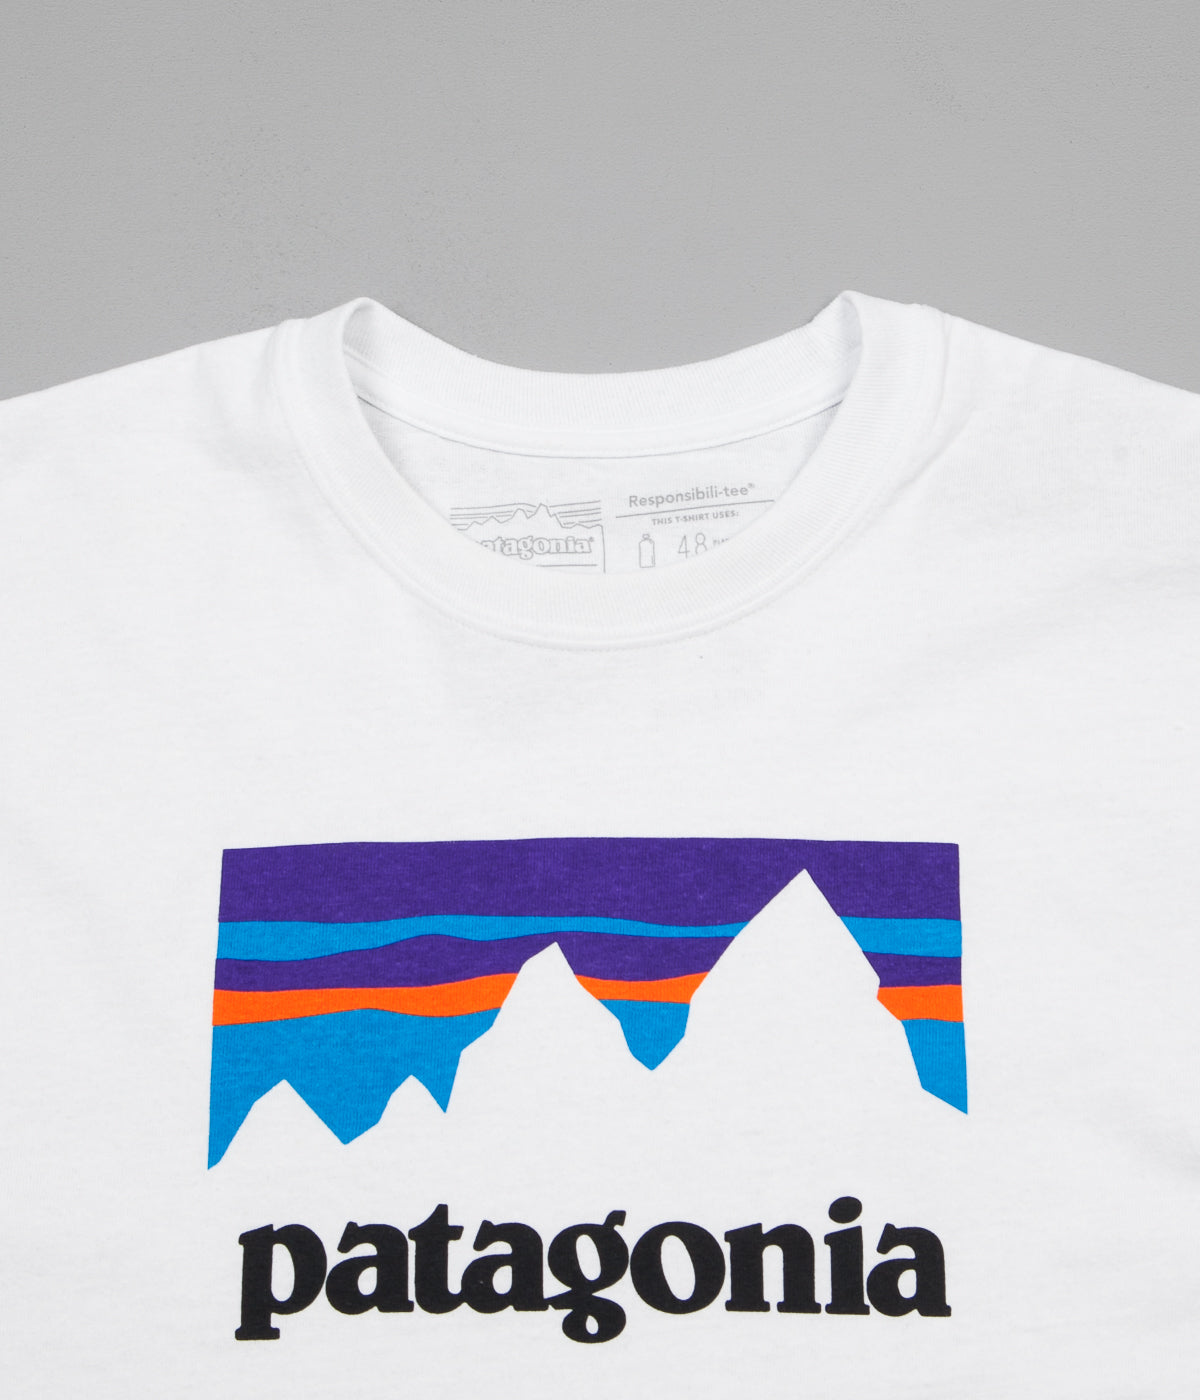 Patagonia Shop Sticker Responsibili-Tee Long Sleeve T-Shirt - White